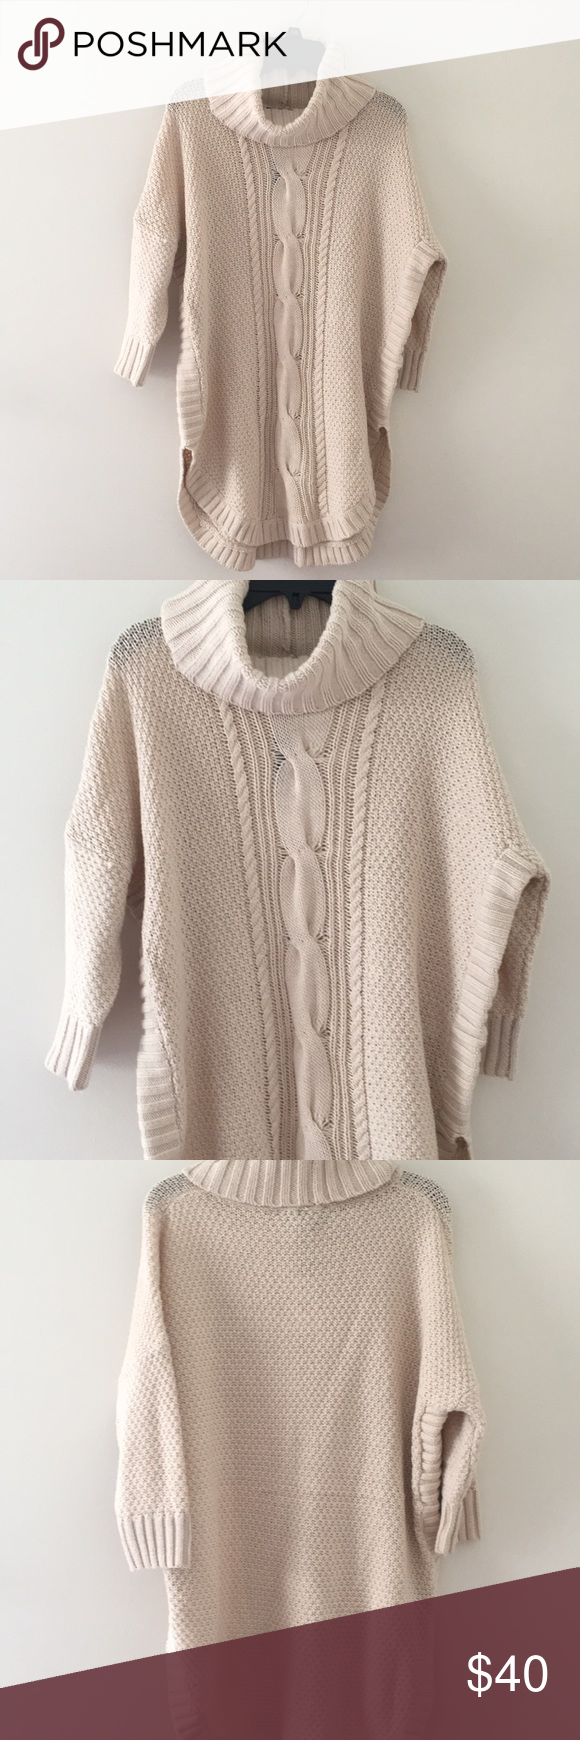 Express Cowl Neck Sweater Cable Knit Circle Hem Cowl New Sweater From Express 3 Quarters Sleeves Color Is Like Clothes Design Pattern Sweater Fashion Design